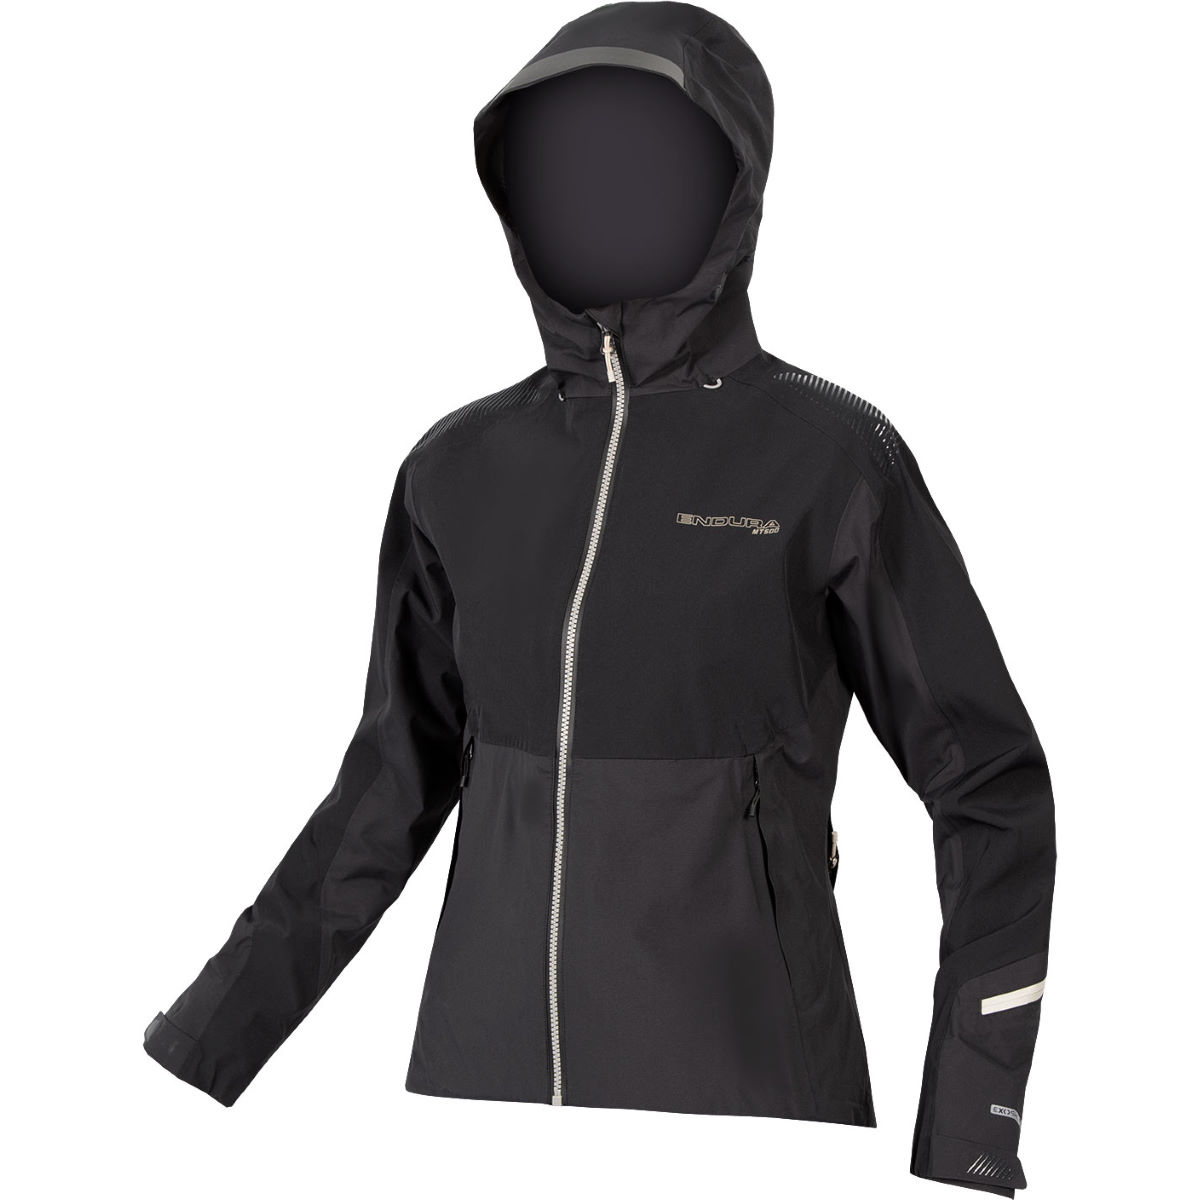 Endura Endura Womens MT500 Waterproof MTB Jacket   Jackets